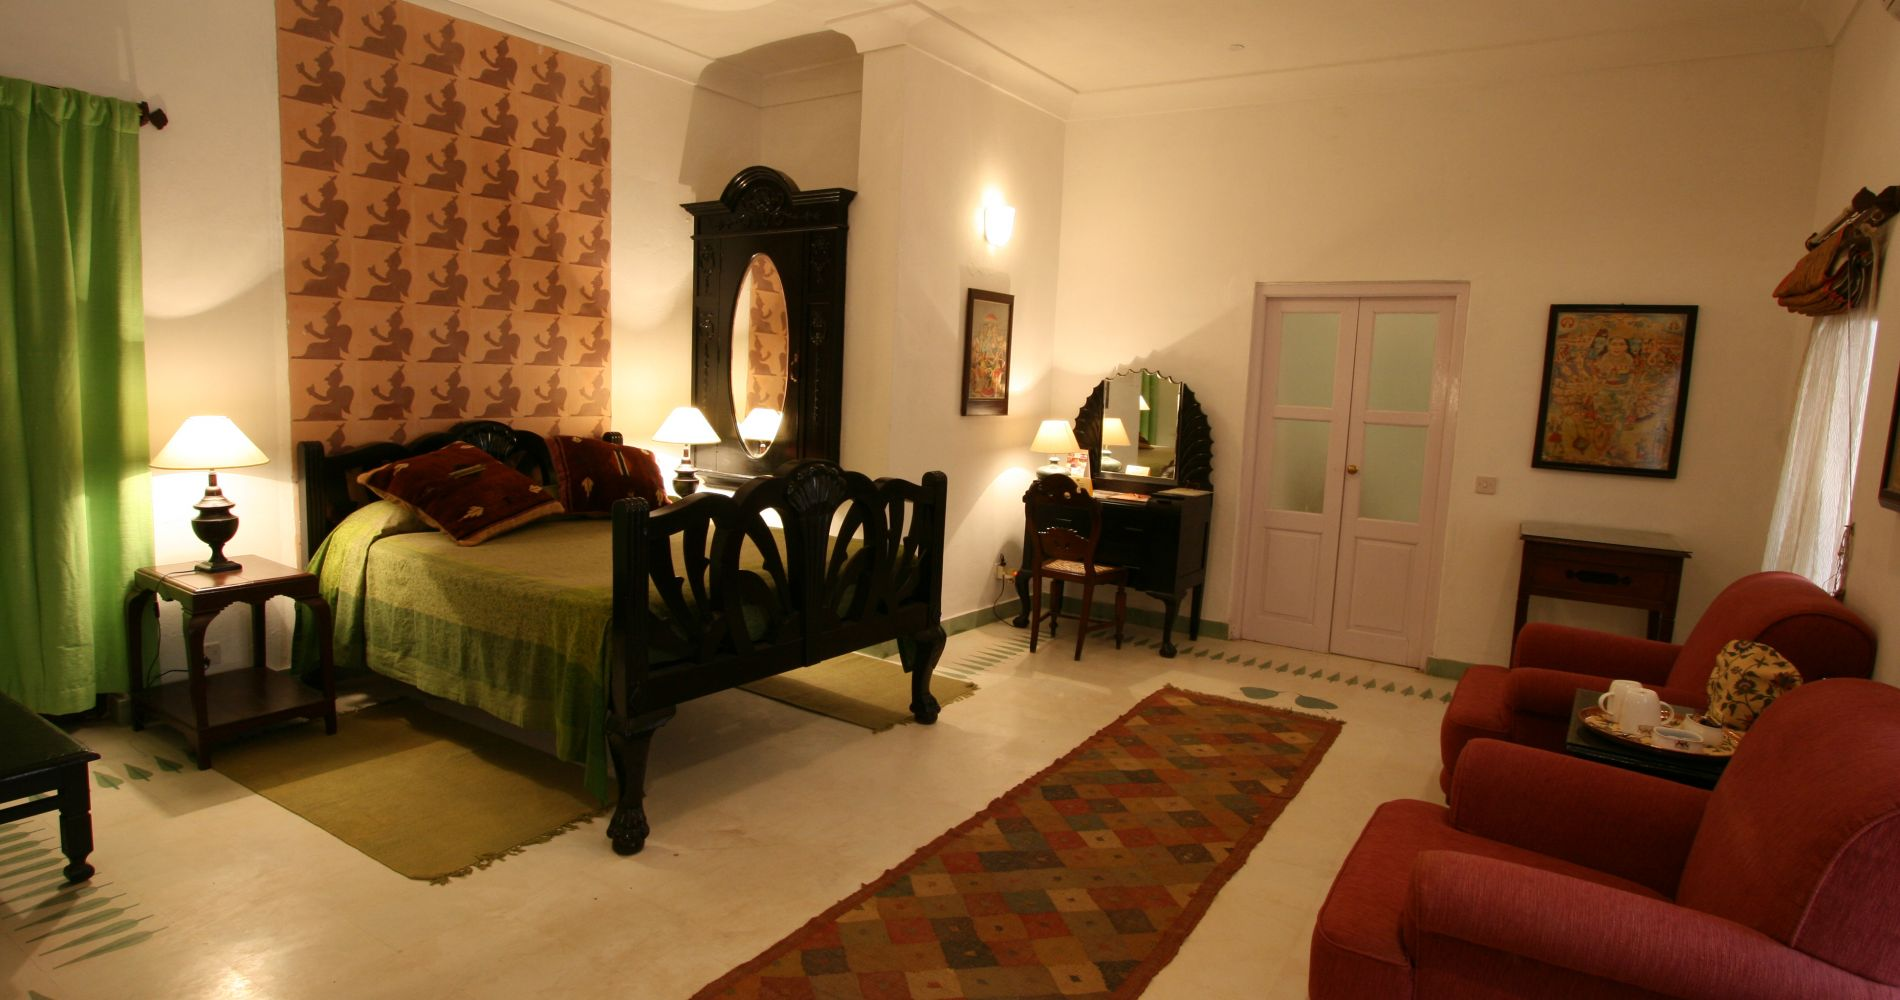 One Night Stay in 15th Century Heritage Hotel India Tinggly Experience Gift